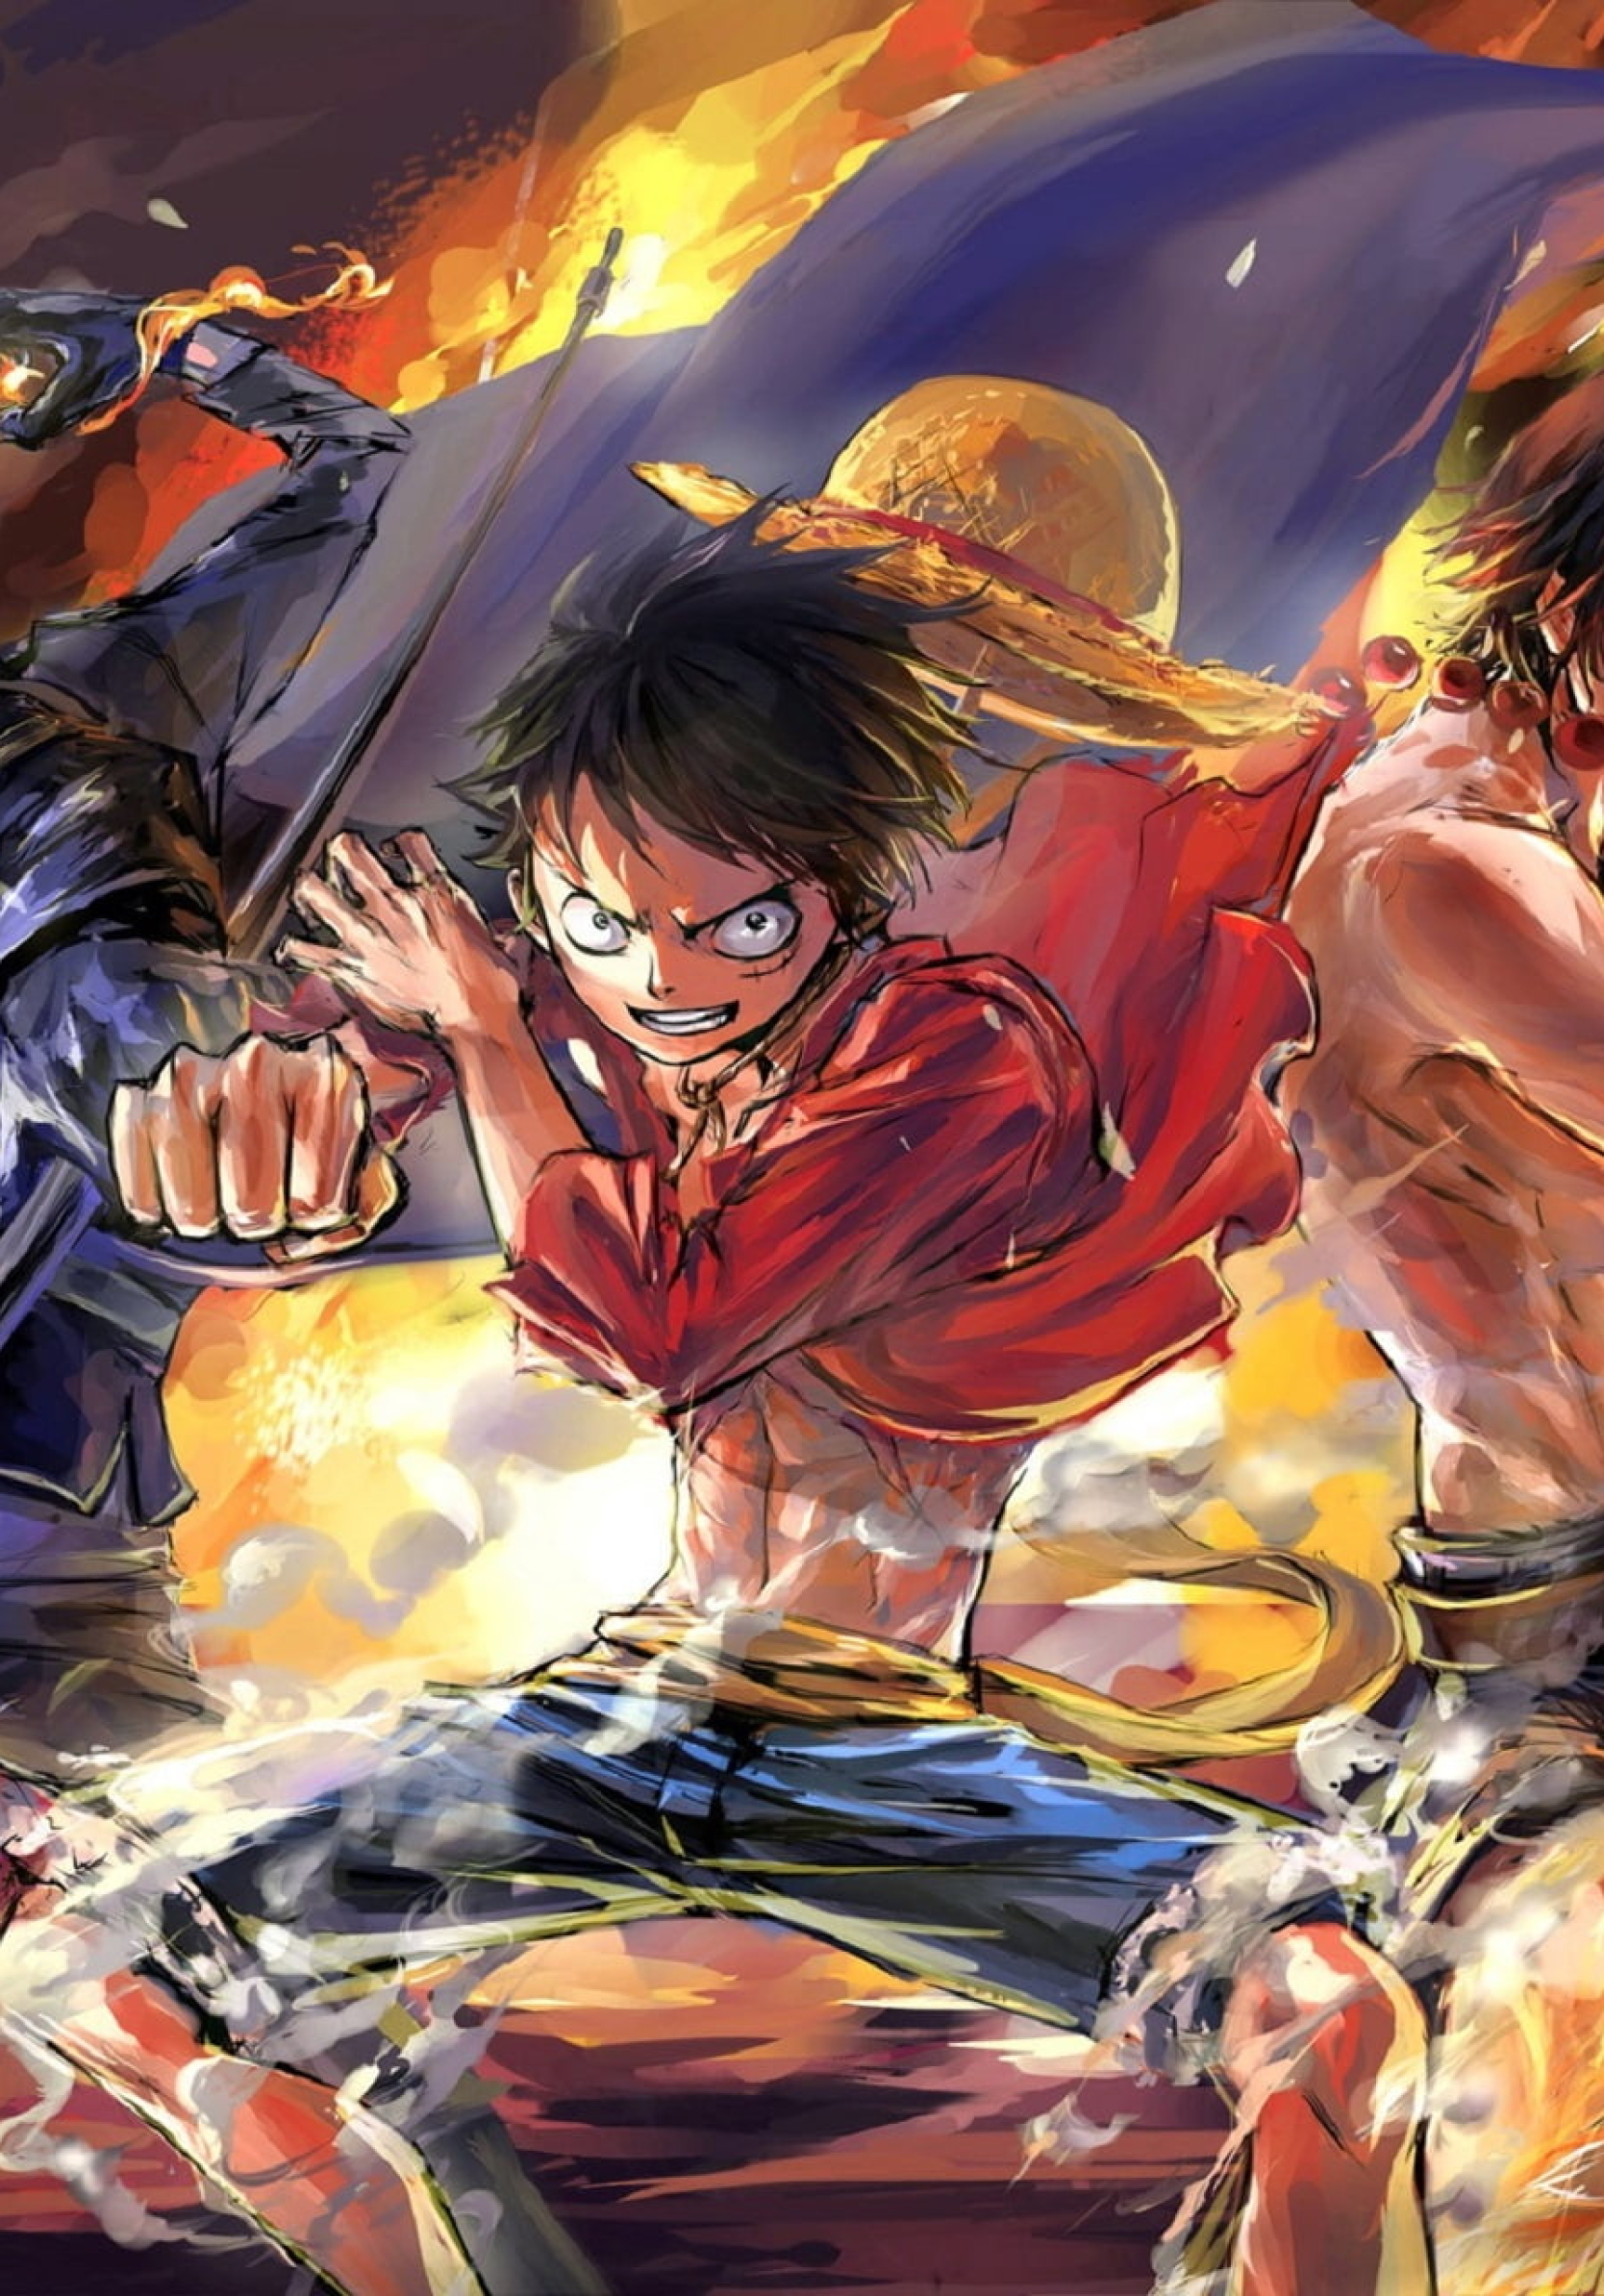 1668x2388 Luffy Ace And Sabo One Piece Team 1668x2388 Resolution Wallpaper Hd Anime 4k Wallpapers Images Photos And Background